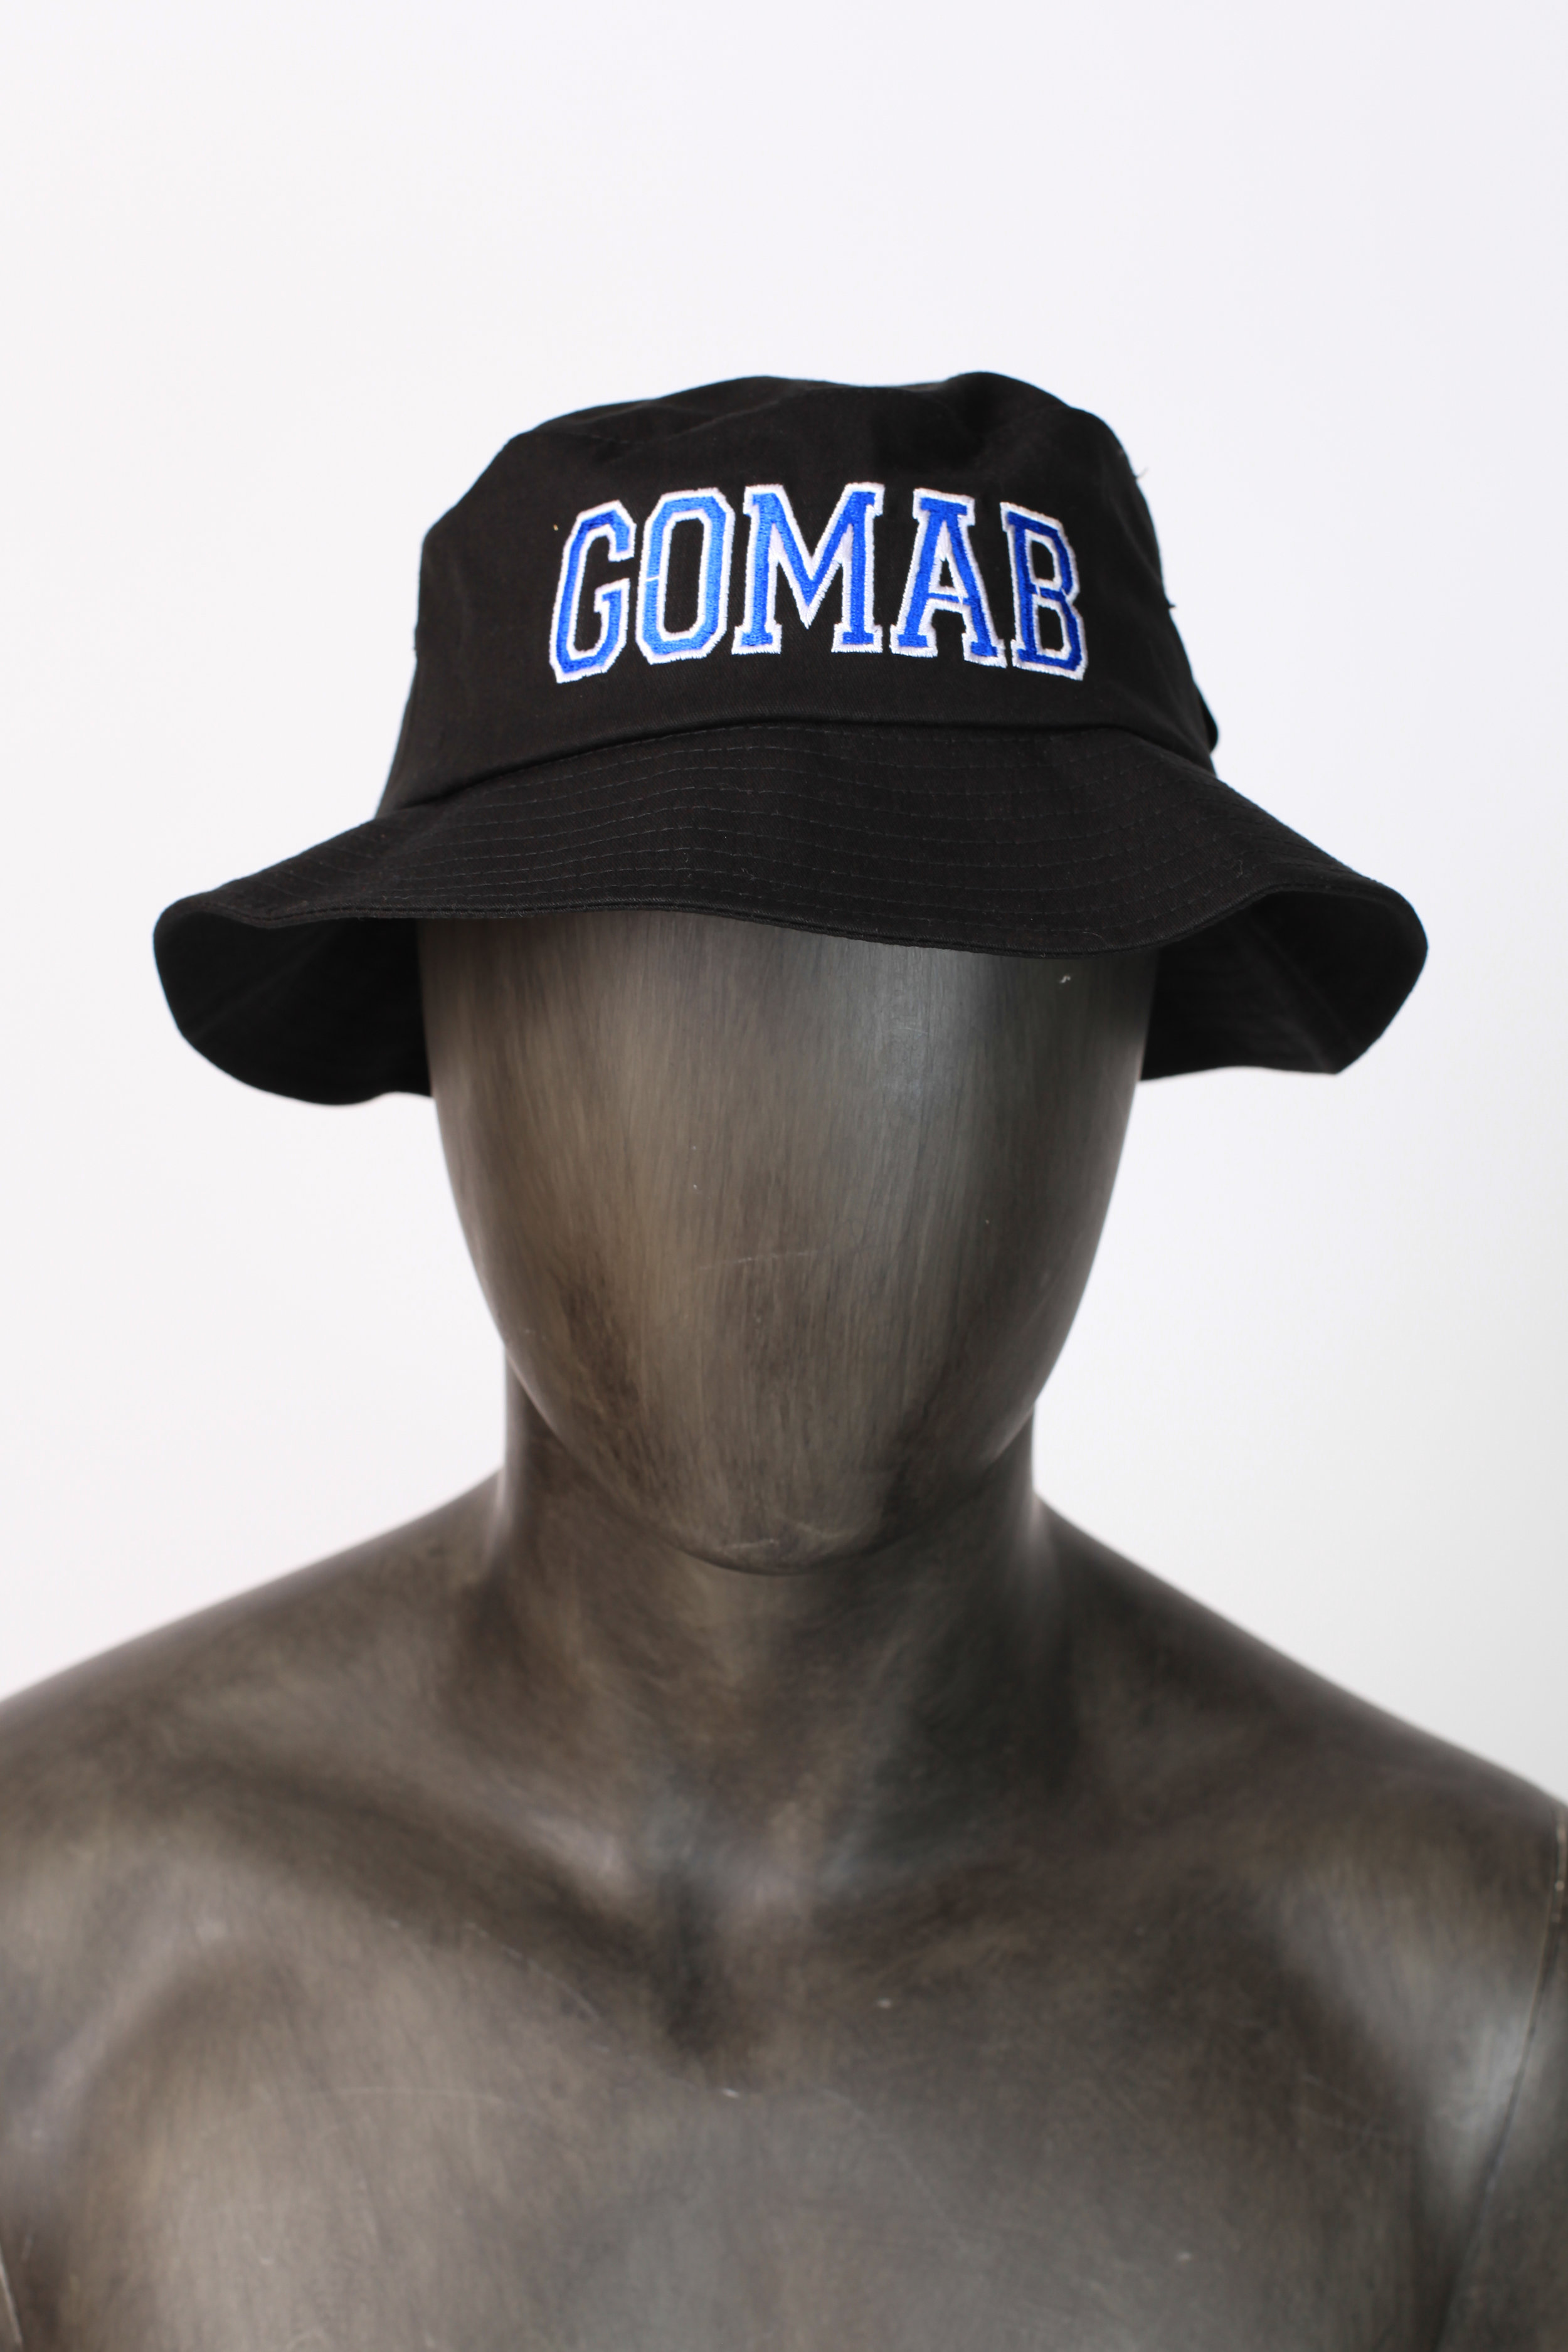 Black Sigma bucket hat